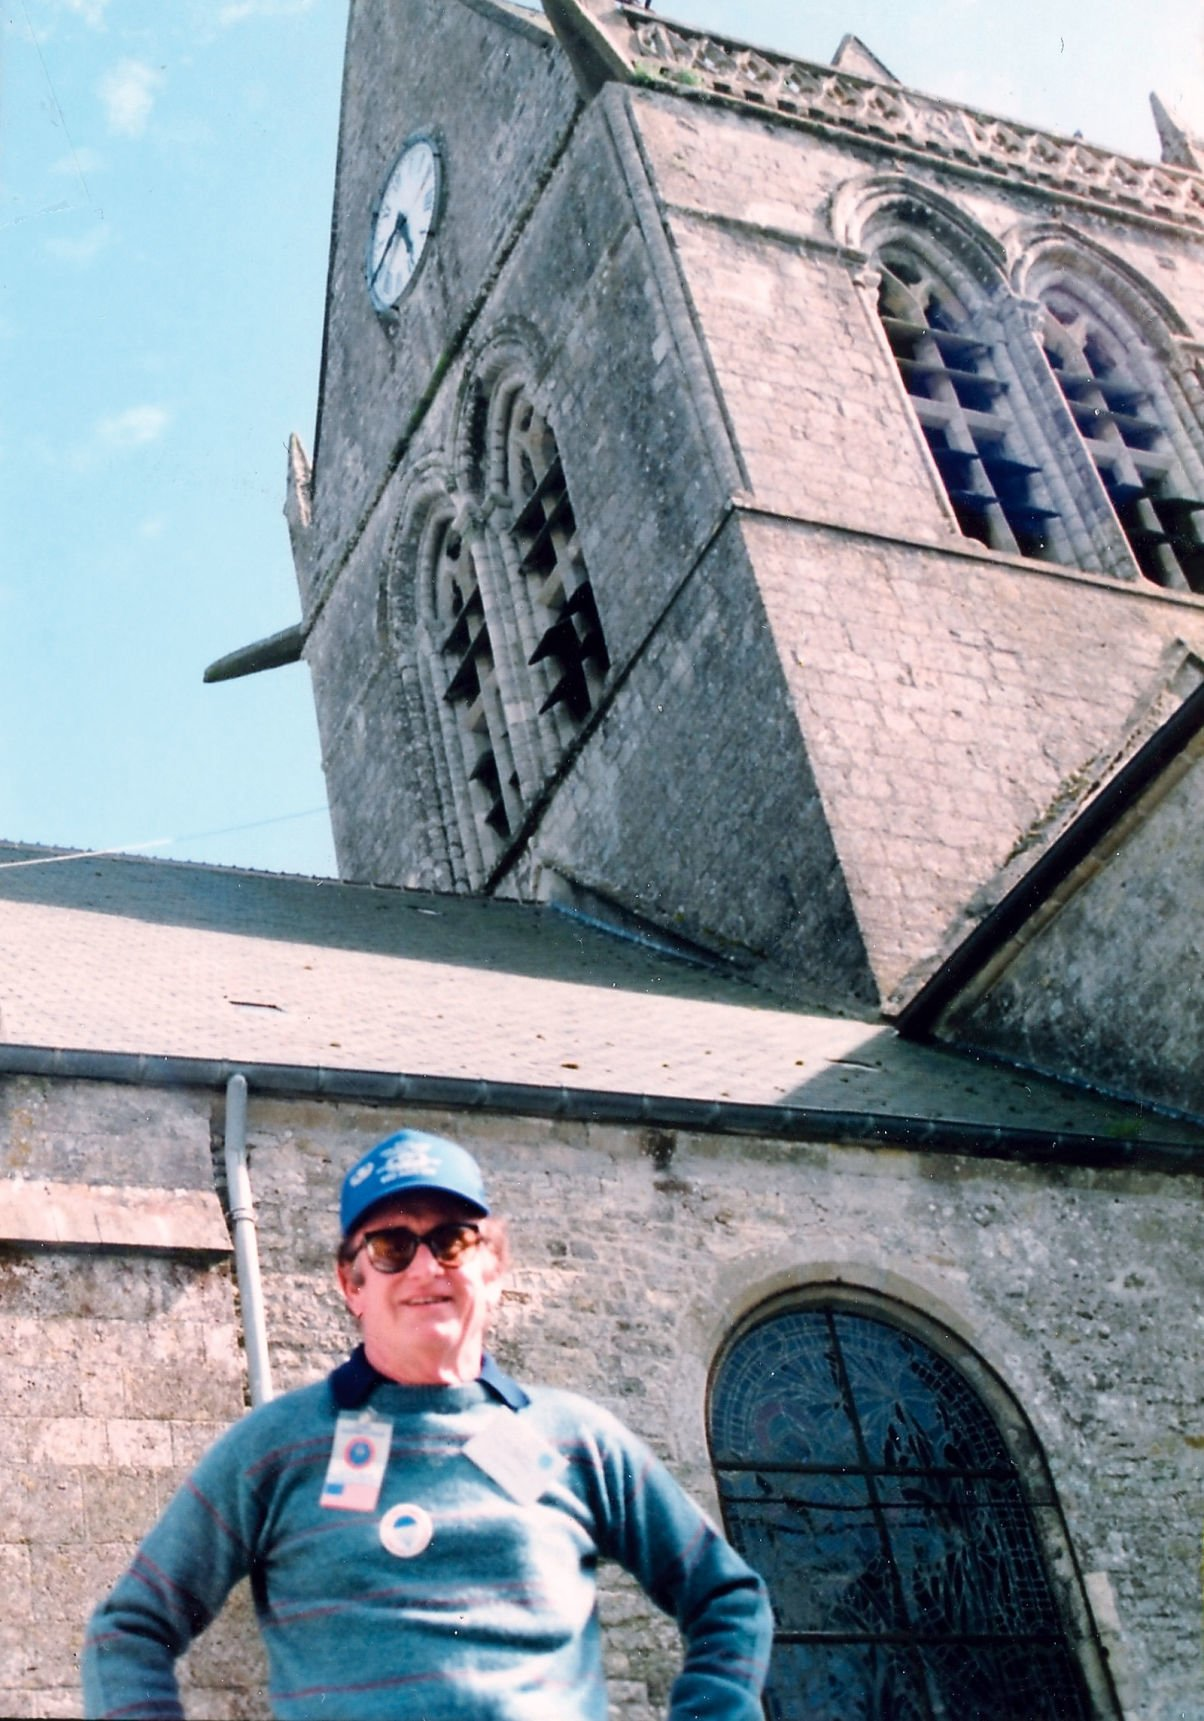 Ken Russell at 500 year old church where he landed on June 6, 1944